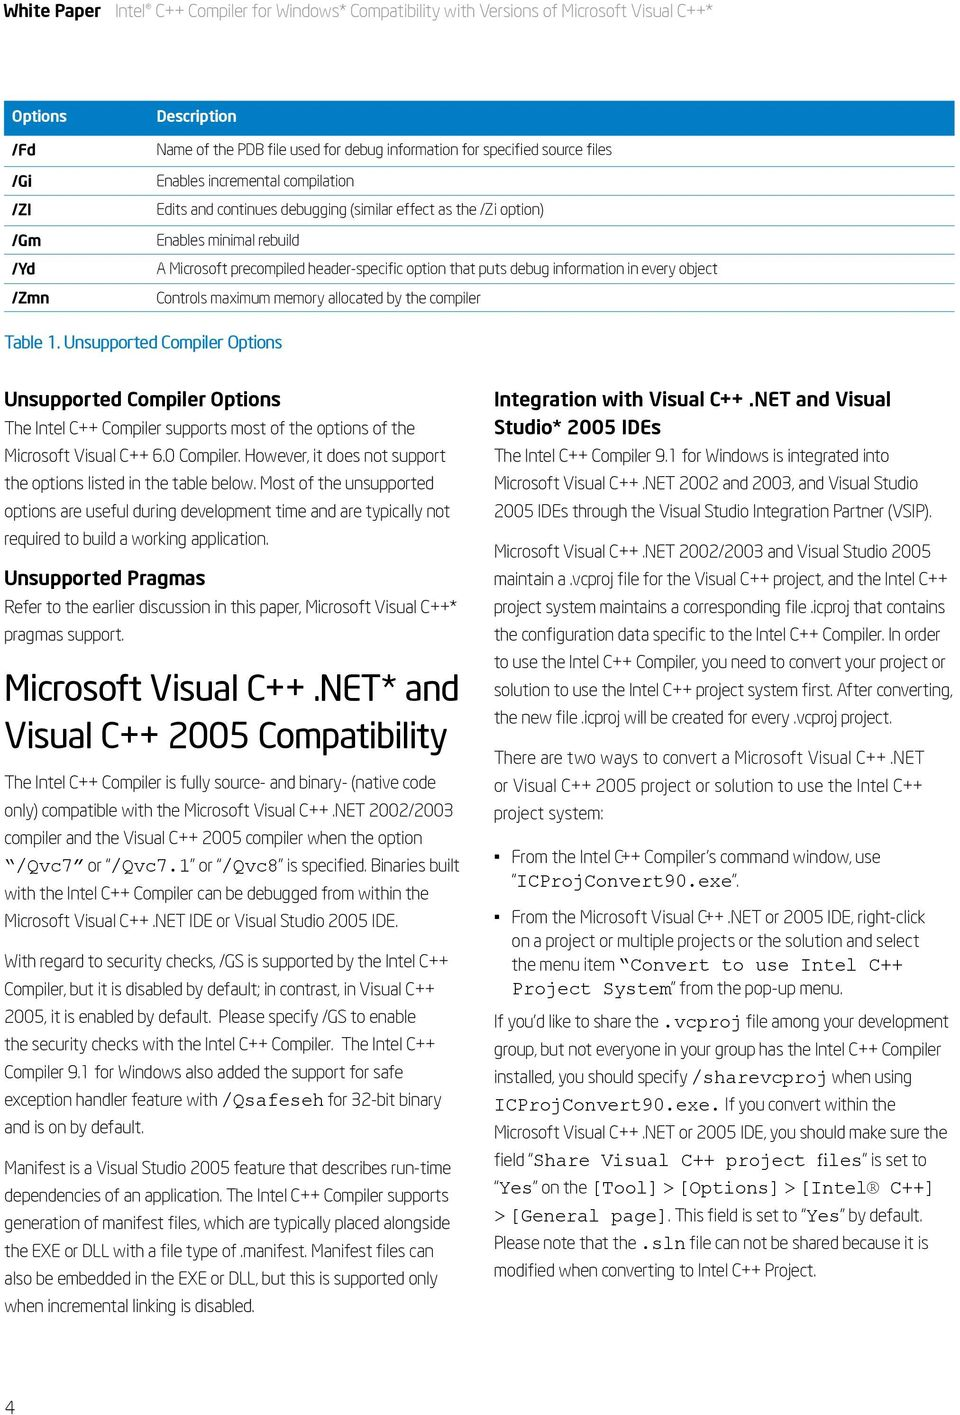 Intel C++ Compiler for Windows* Compatibility with Versions